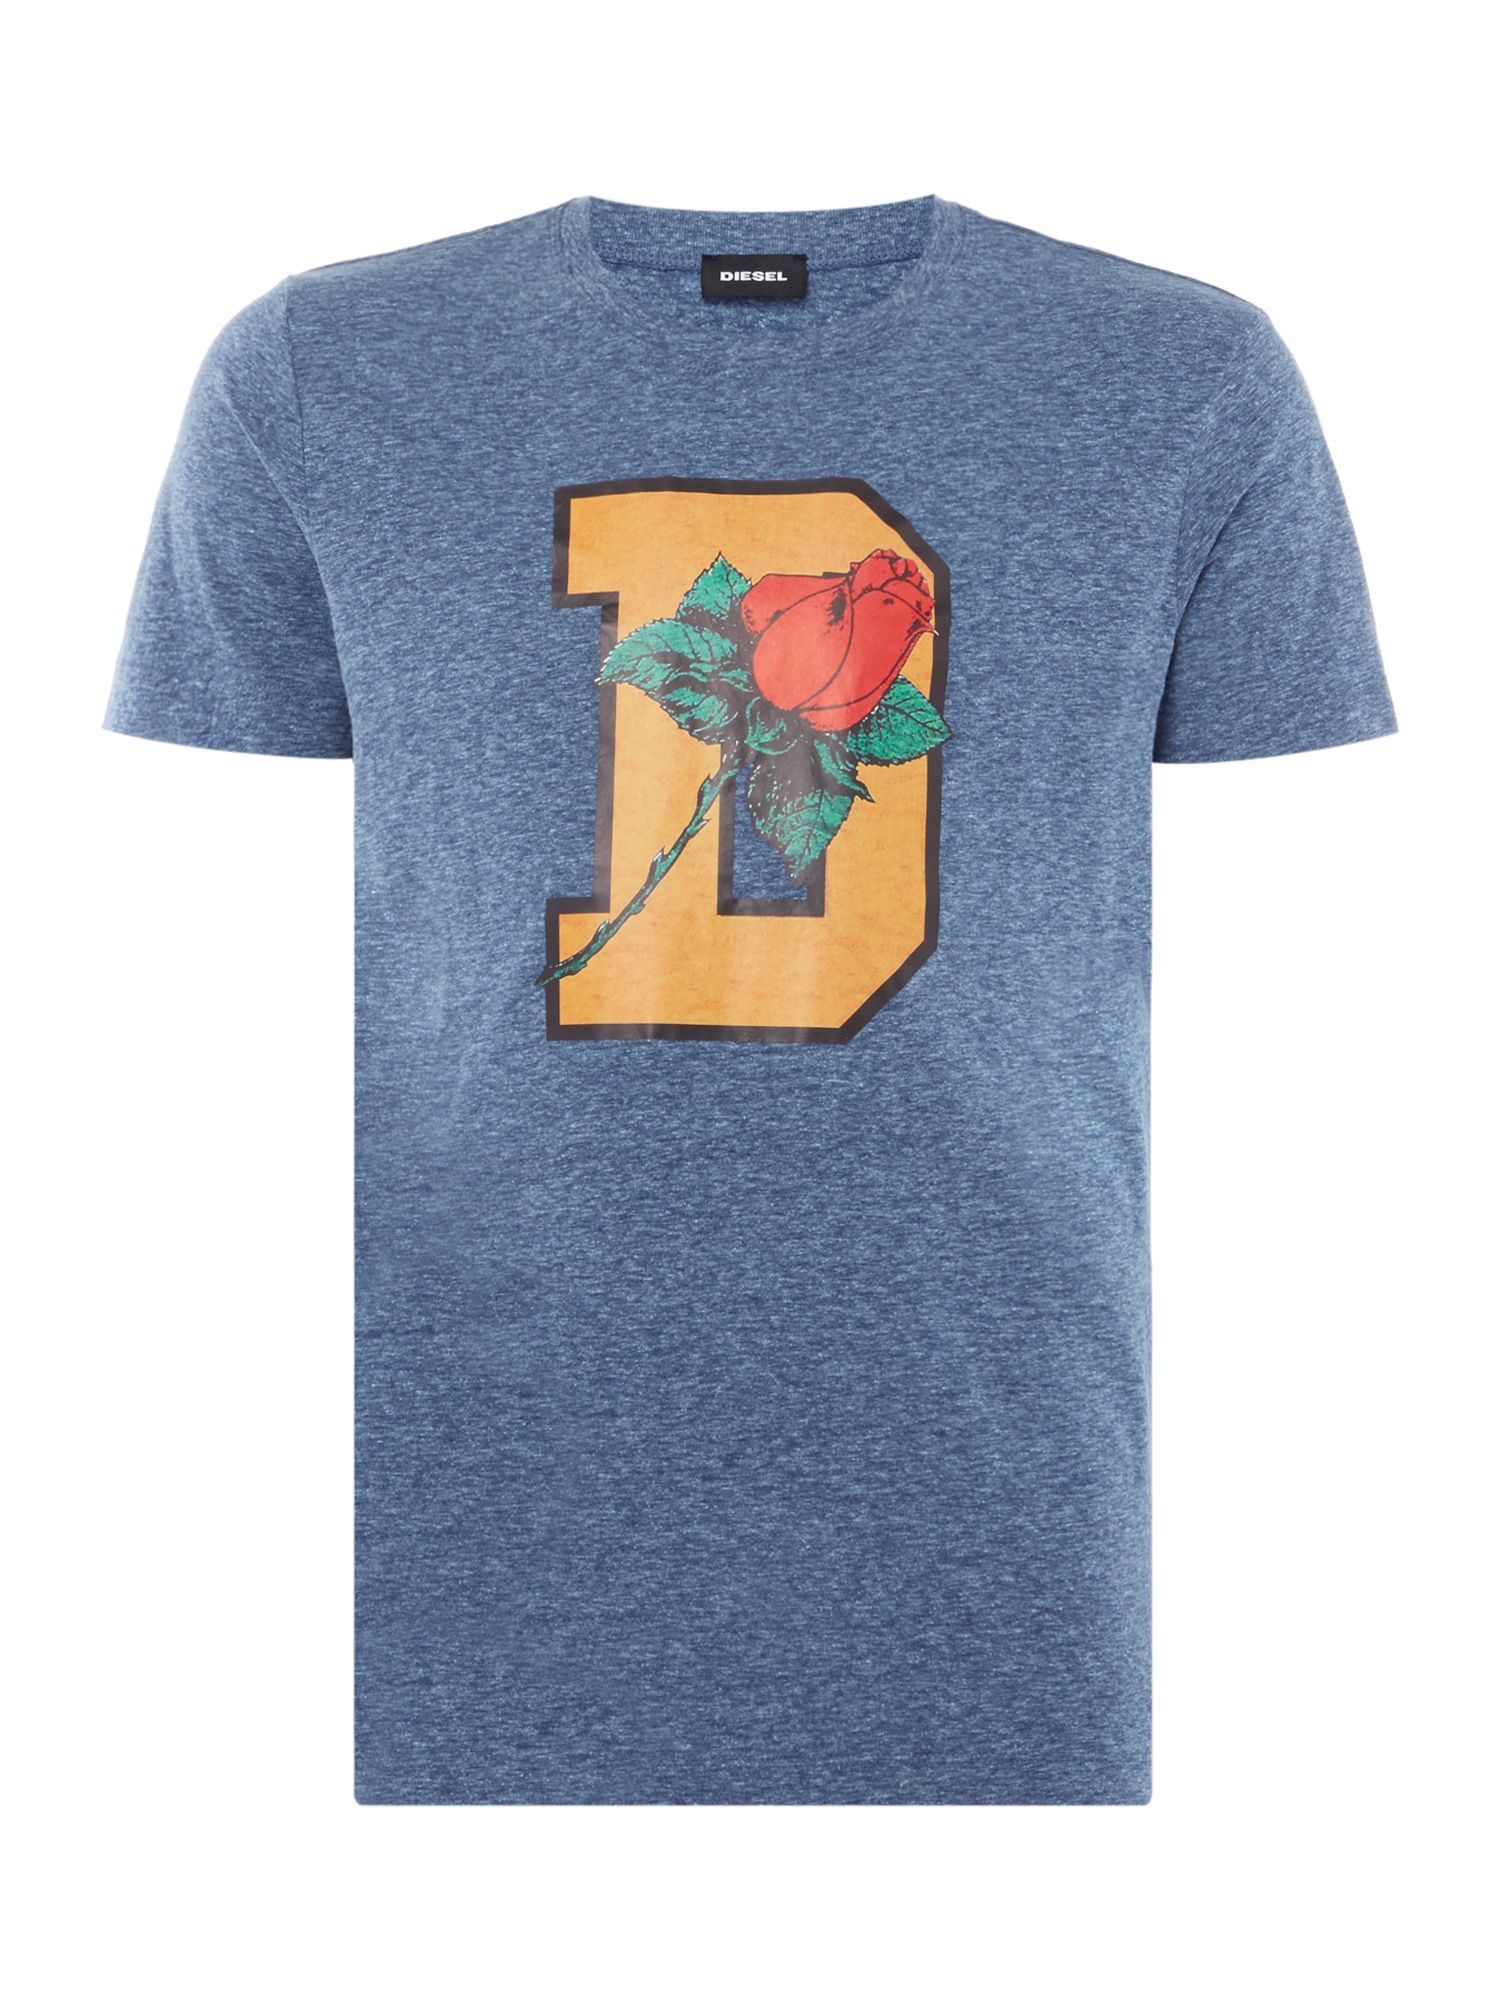 Men's Diesel Rose Print Tshirt, Blue